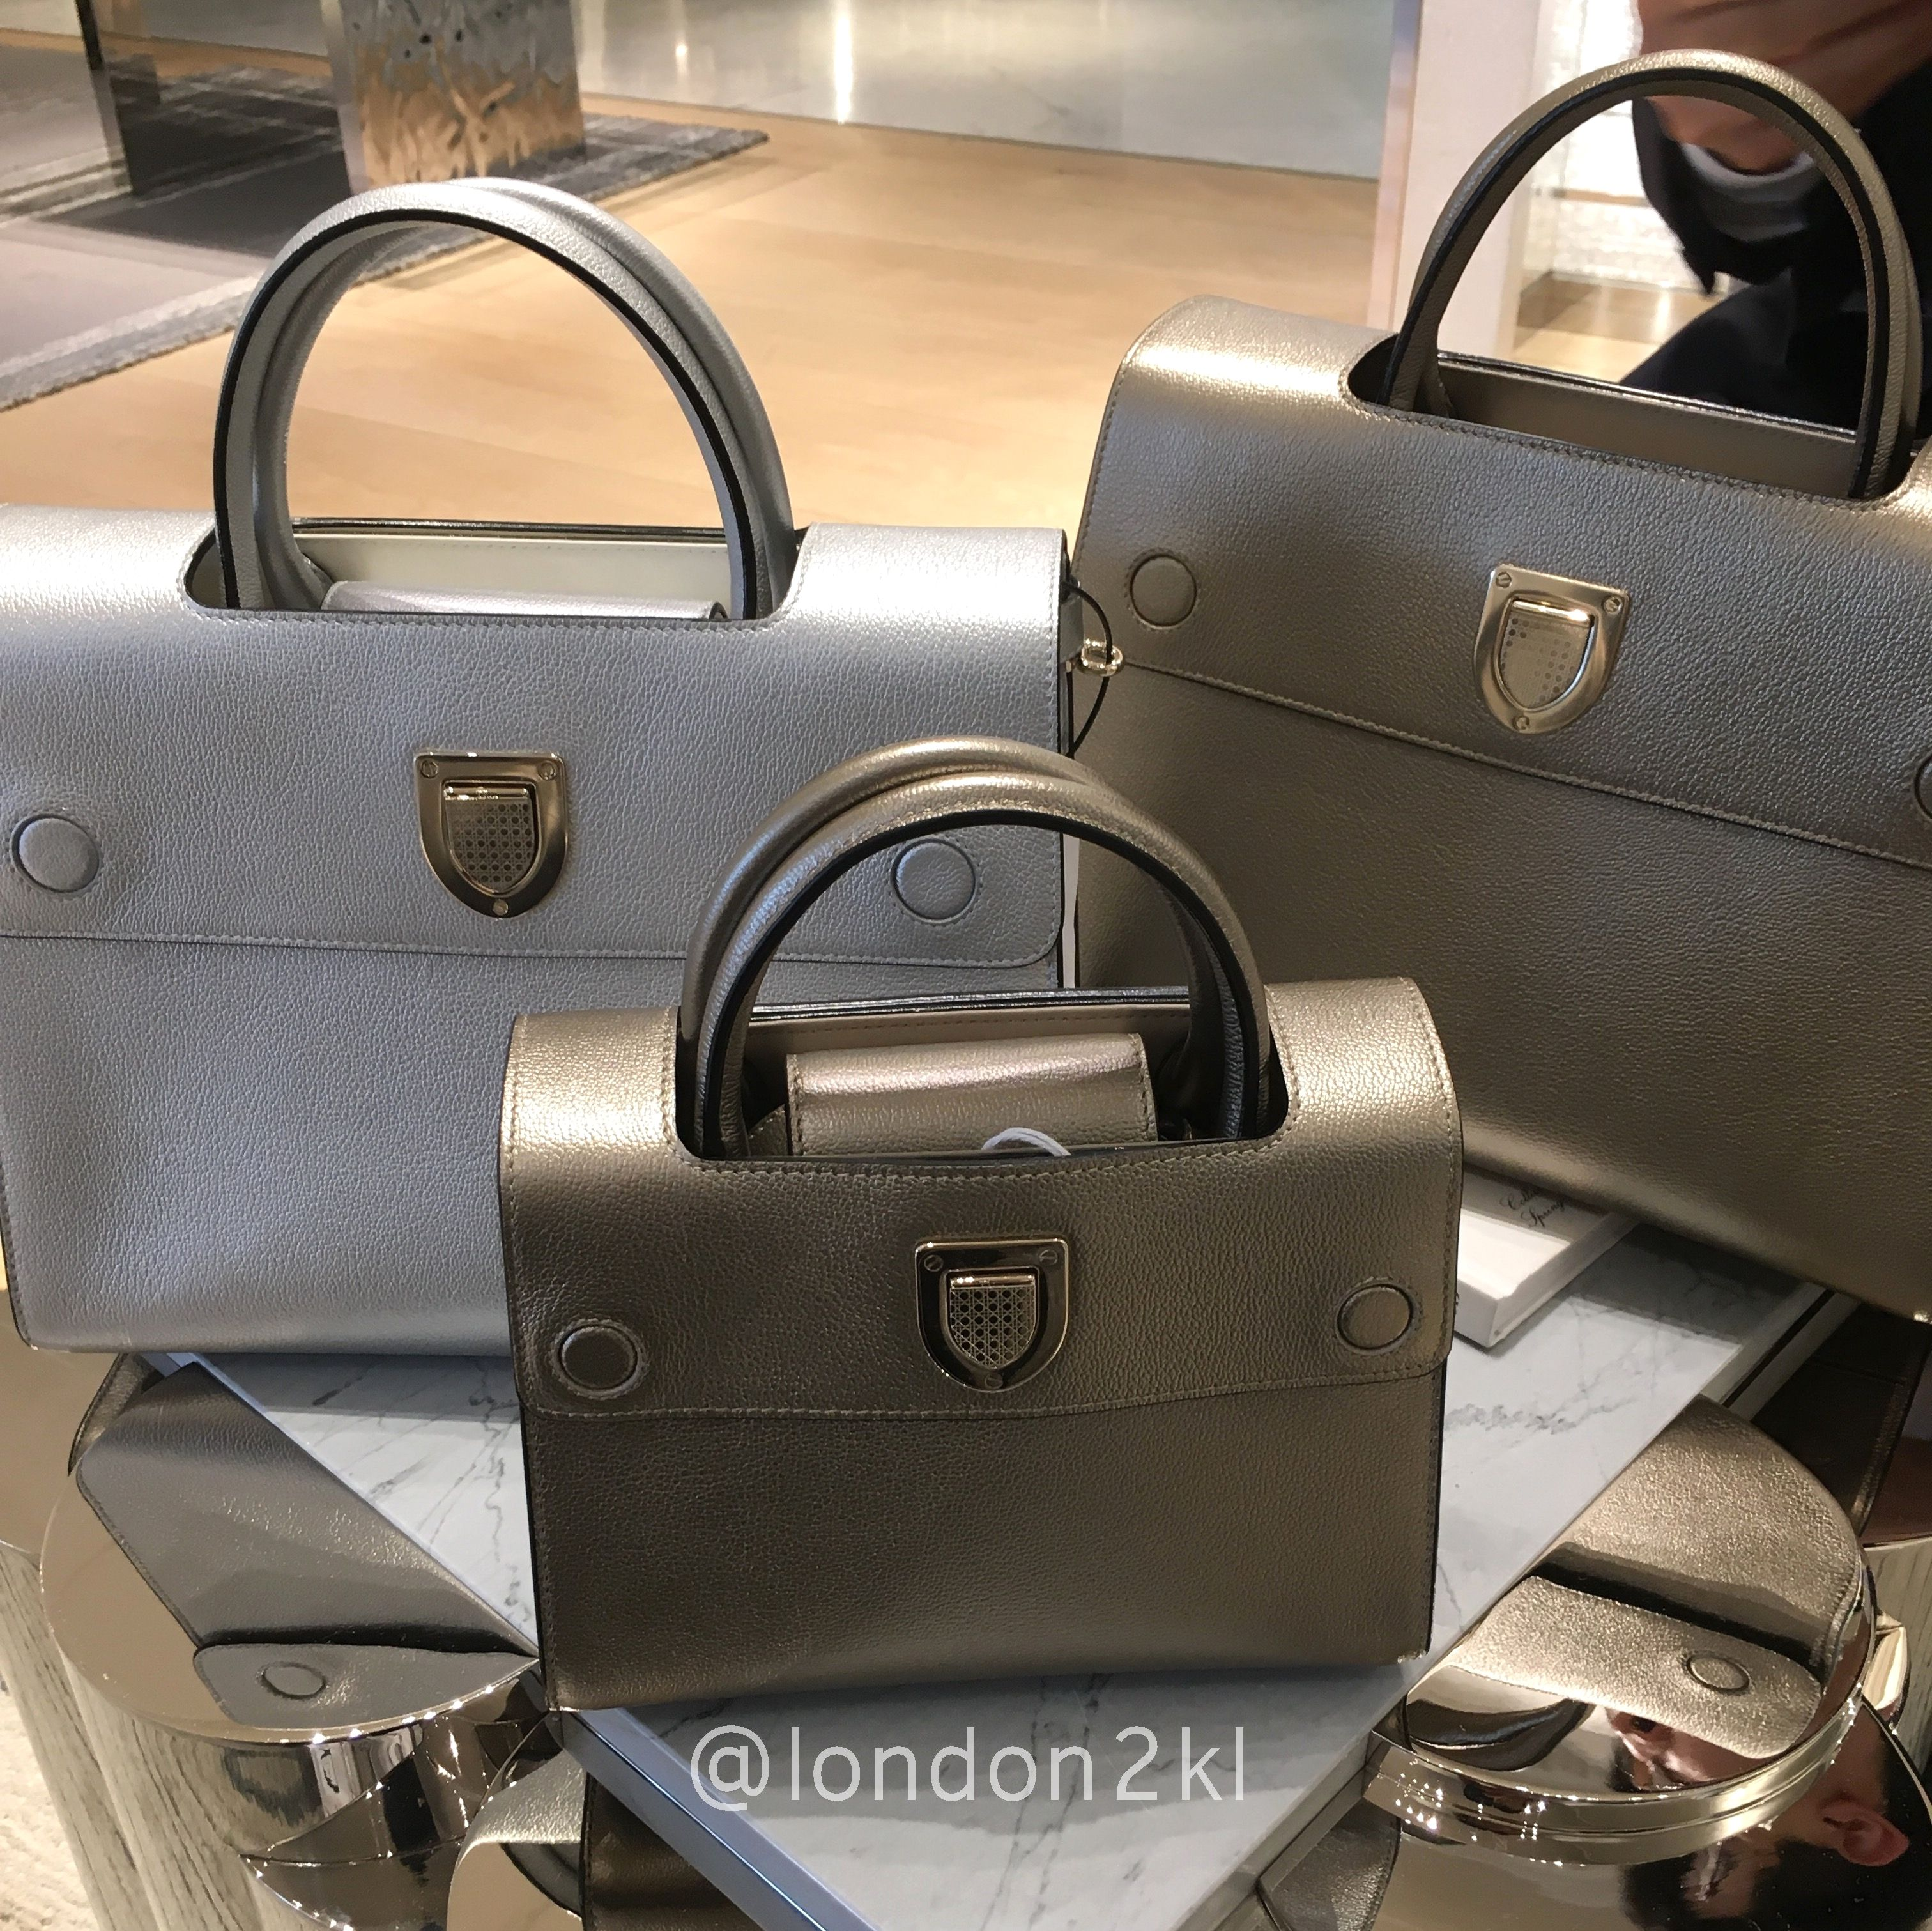 b8f524a74b Diorever Bags in Mini and Medium Size ❤❤❤ it? Order now. Once it's gone,  it's gone! Just WhatsApp me +44 7535 715 239, Erwan. Click my account name  for ...